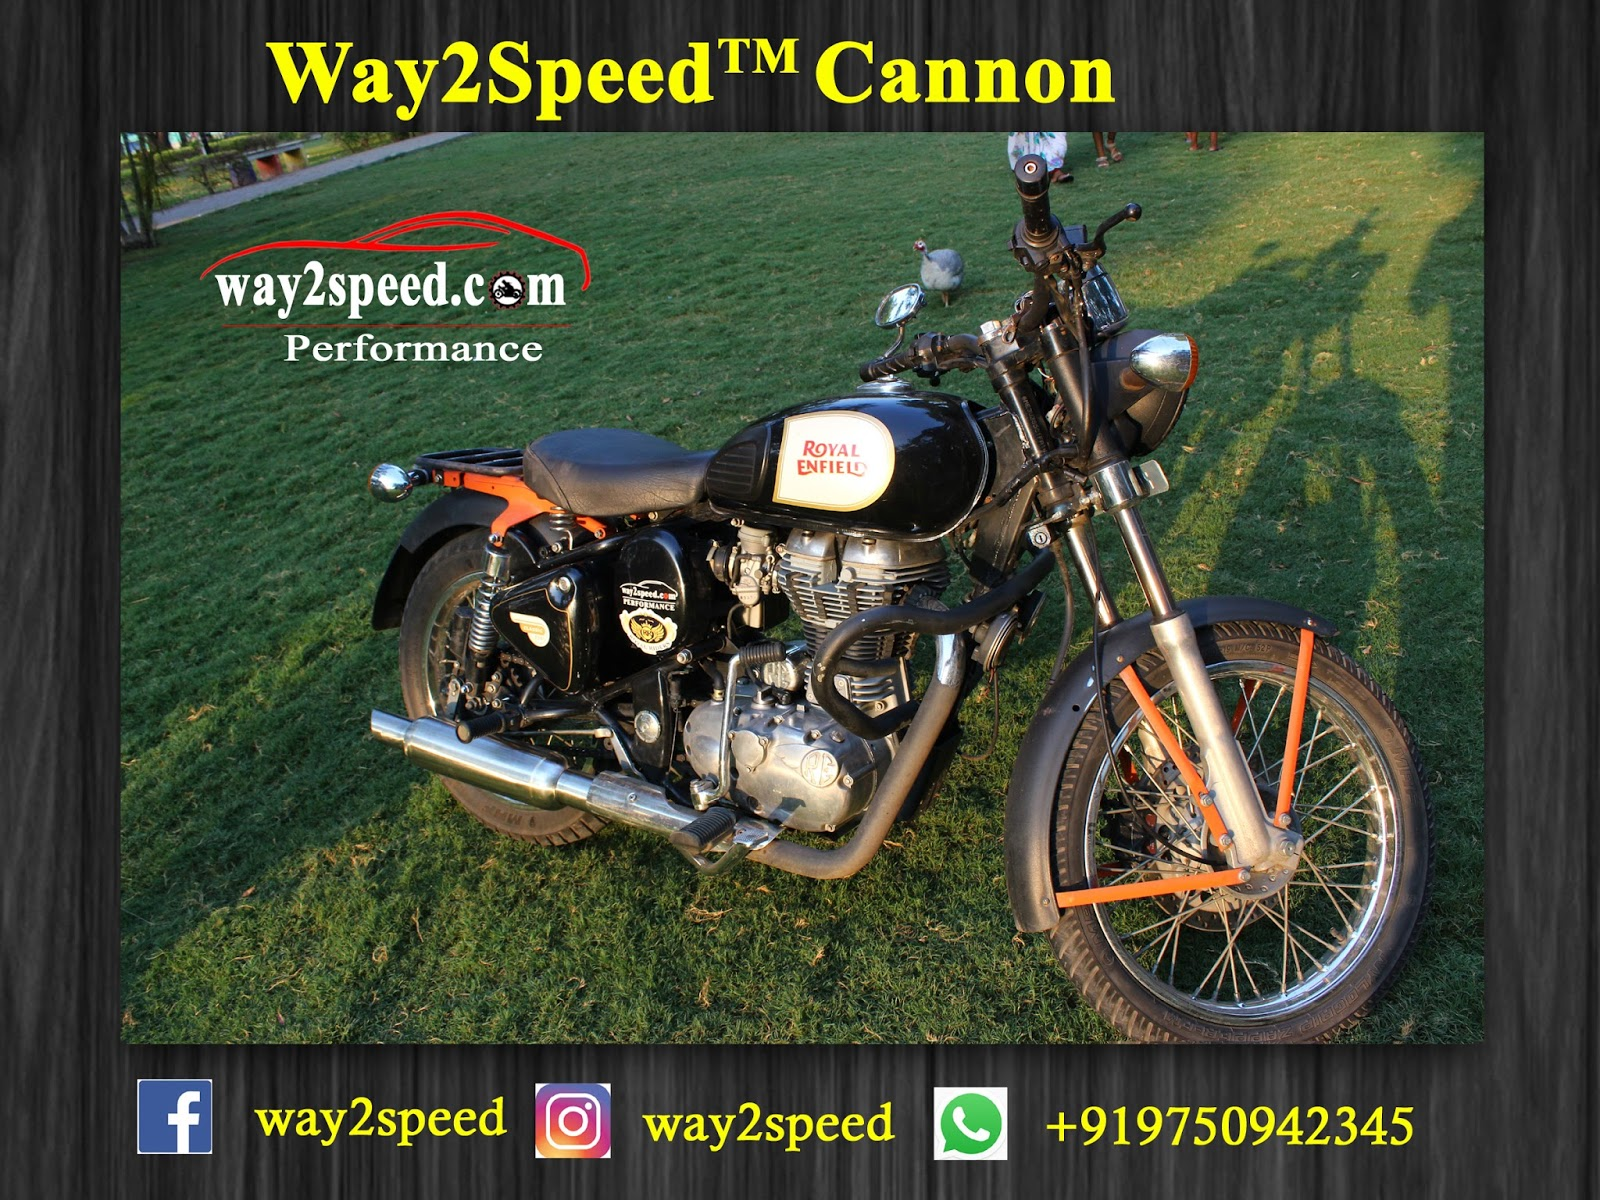 "Royal Enfield Free Flow Silencer ""way2speed Cannon""  # Royal Enfield Exhaust ""Way2Speed Cannon"" is made from Stainless steel SAE 304 grade. # Royal Enfield Exhaust ""Way2Speed Cannon"" Uses highest gauge metal for superior Thump  # Way2Speed Cannon Uses a Performance Tuned free flow Baffle designed specially for Royal Enfield  # Royal Enfield Exhaust ""Way2Speed Cannon"" is Insulated with high density Ceramic wool packing # Way2Speed Cannon is designed for street and off-roading purpose # Way2Speed Cannon increases initial, mid-range to top end performance.  # Way2Speed Cannon is satin stainless steel finish looks unique. # Royal Enfield Exhaust ""Way2Speed Cannon"" Rust Free non corrosive exhaust. # Designed and perfected by Way2speed Performance Royal Enfield Silencer 